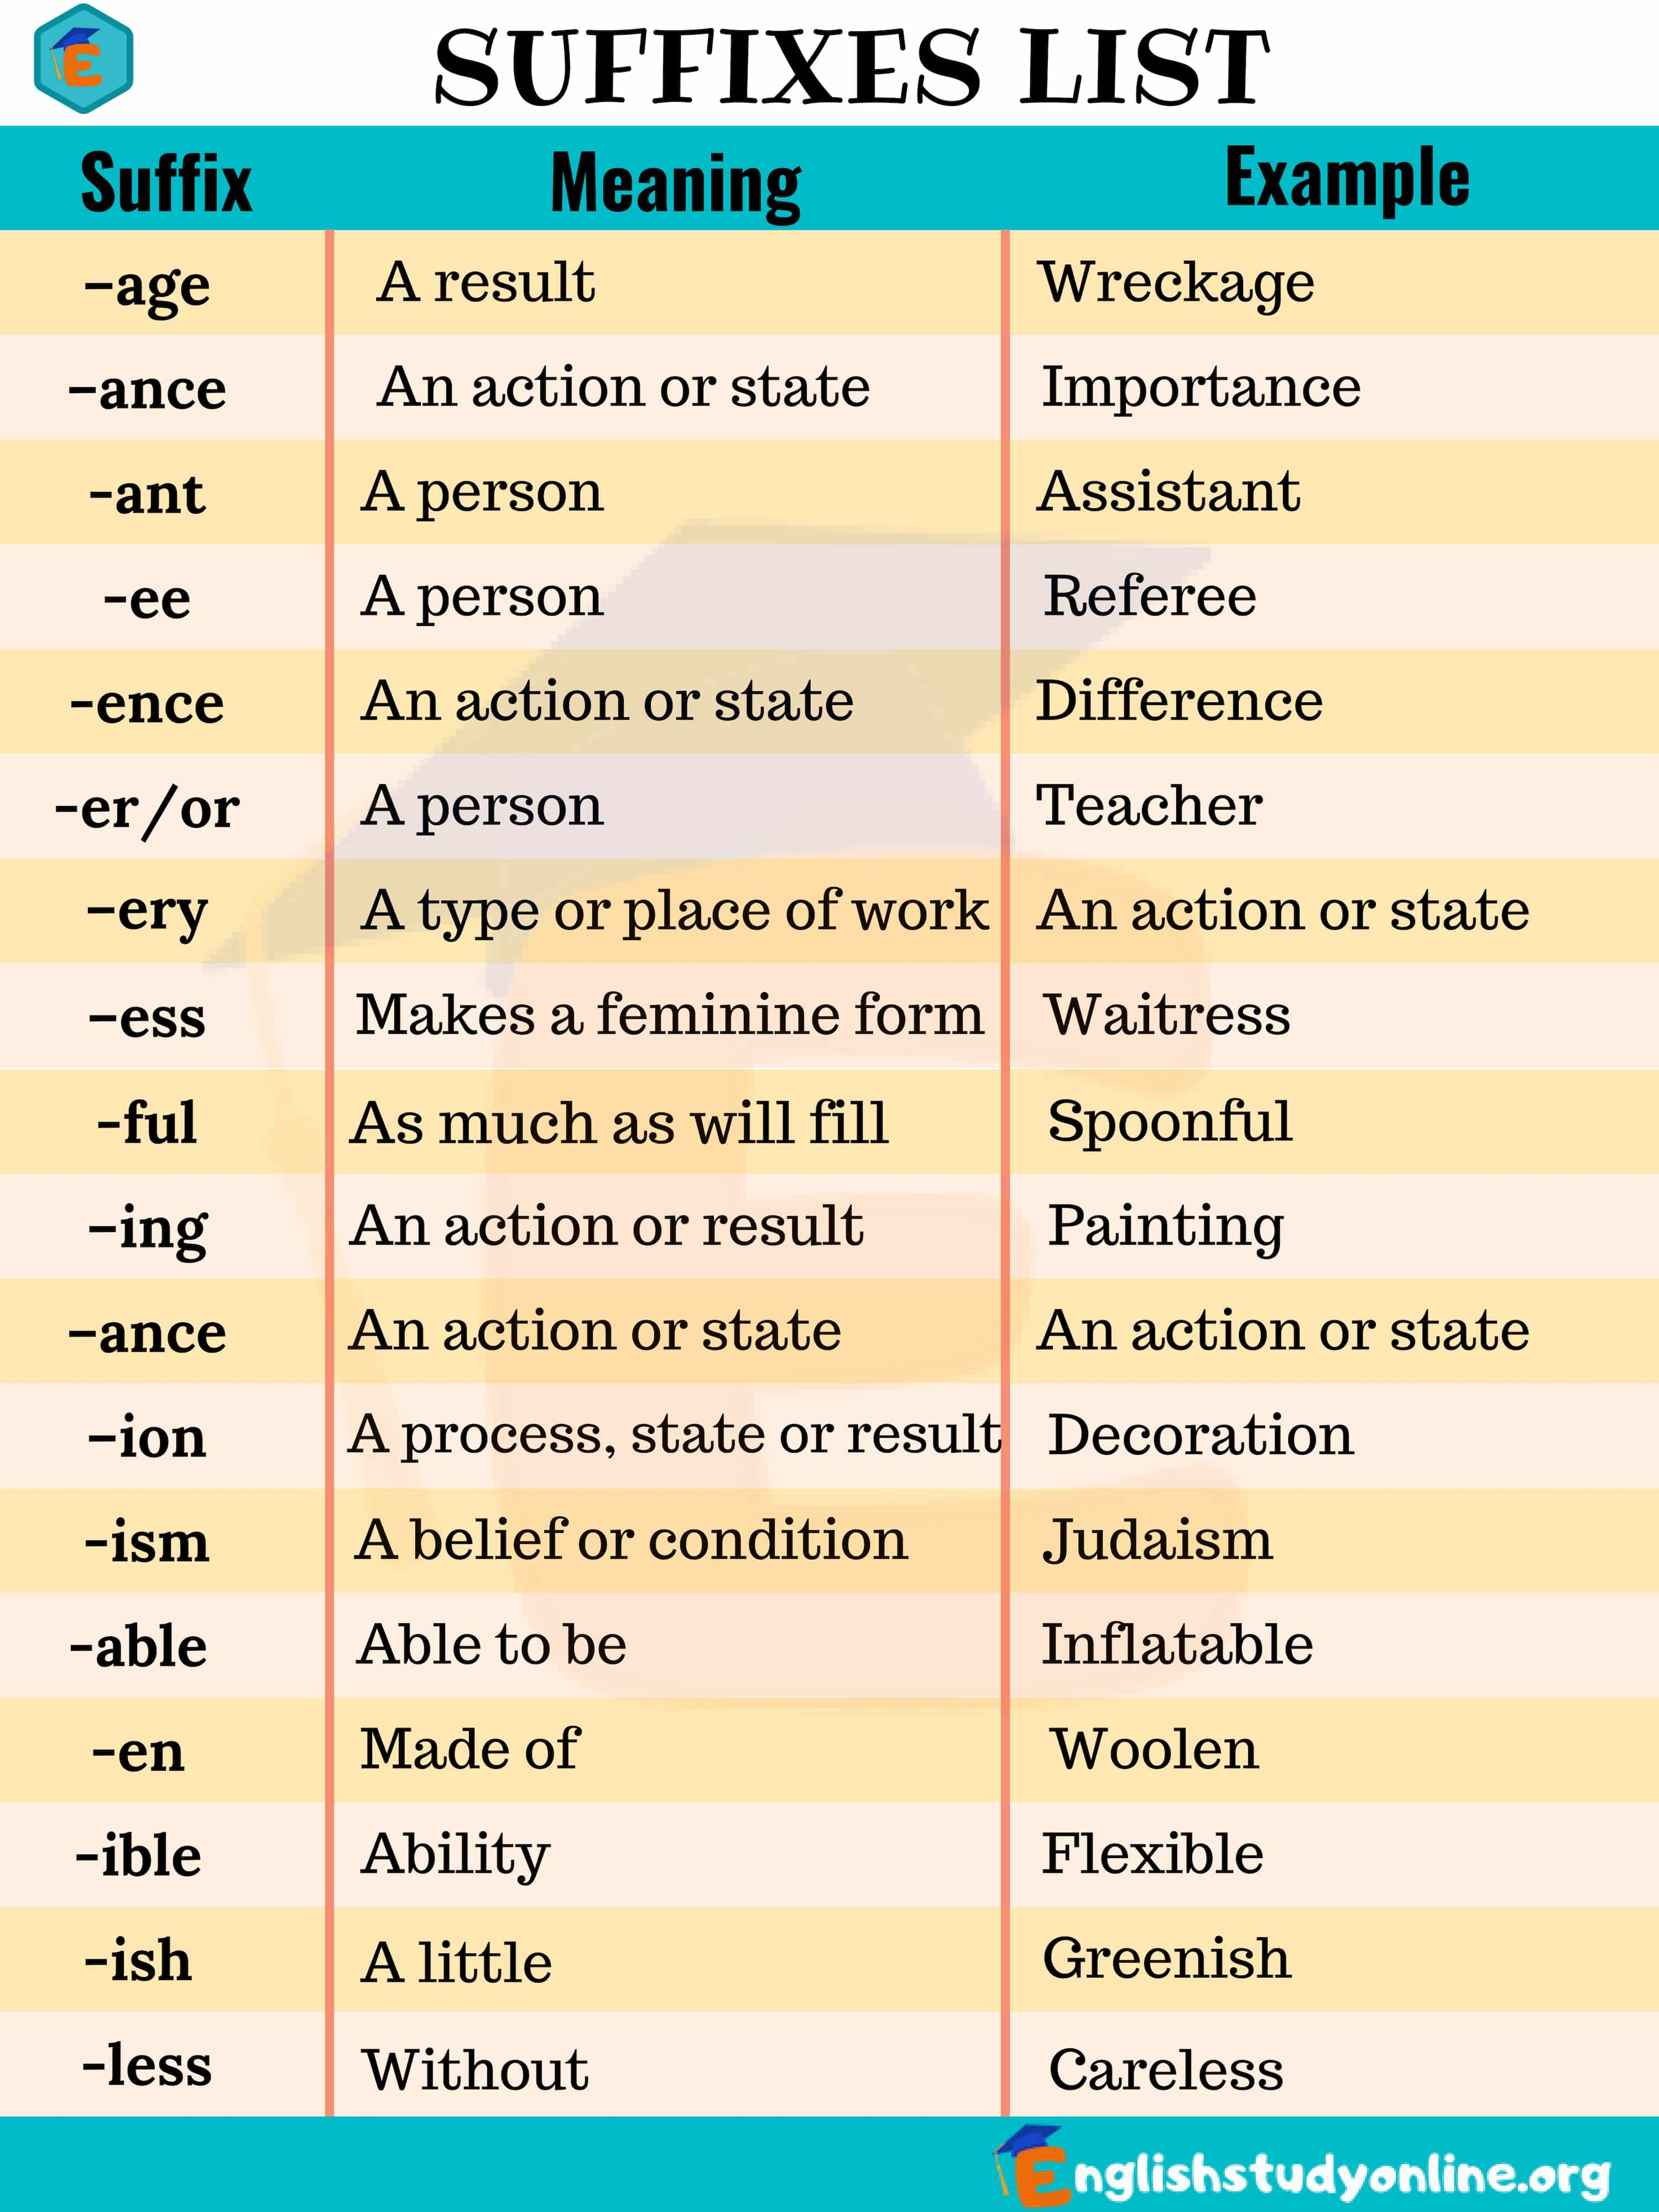 List Of Suffix 50 Most Common Suffixes With Meaning And